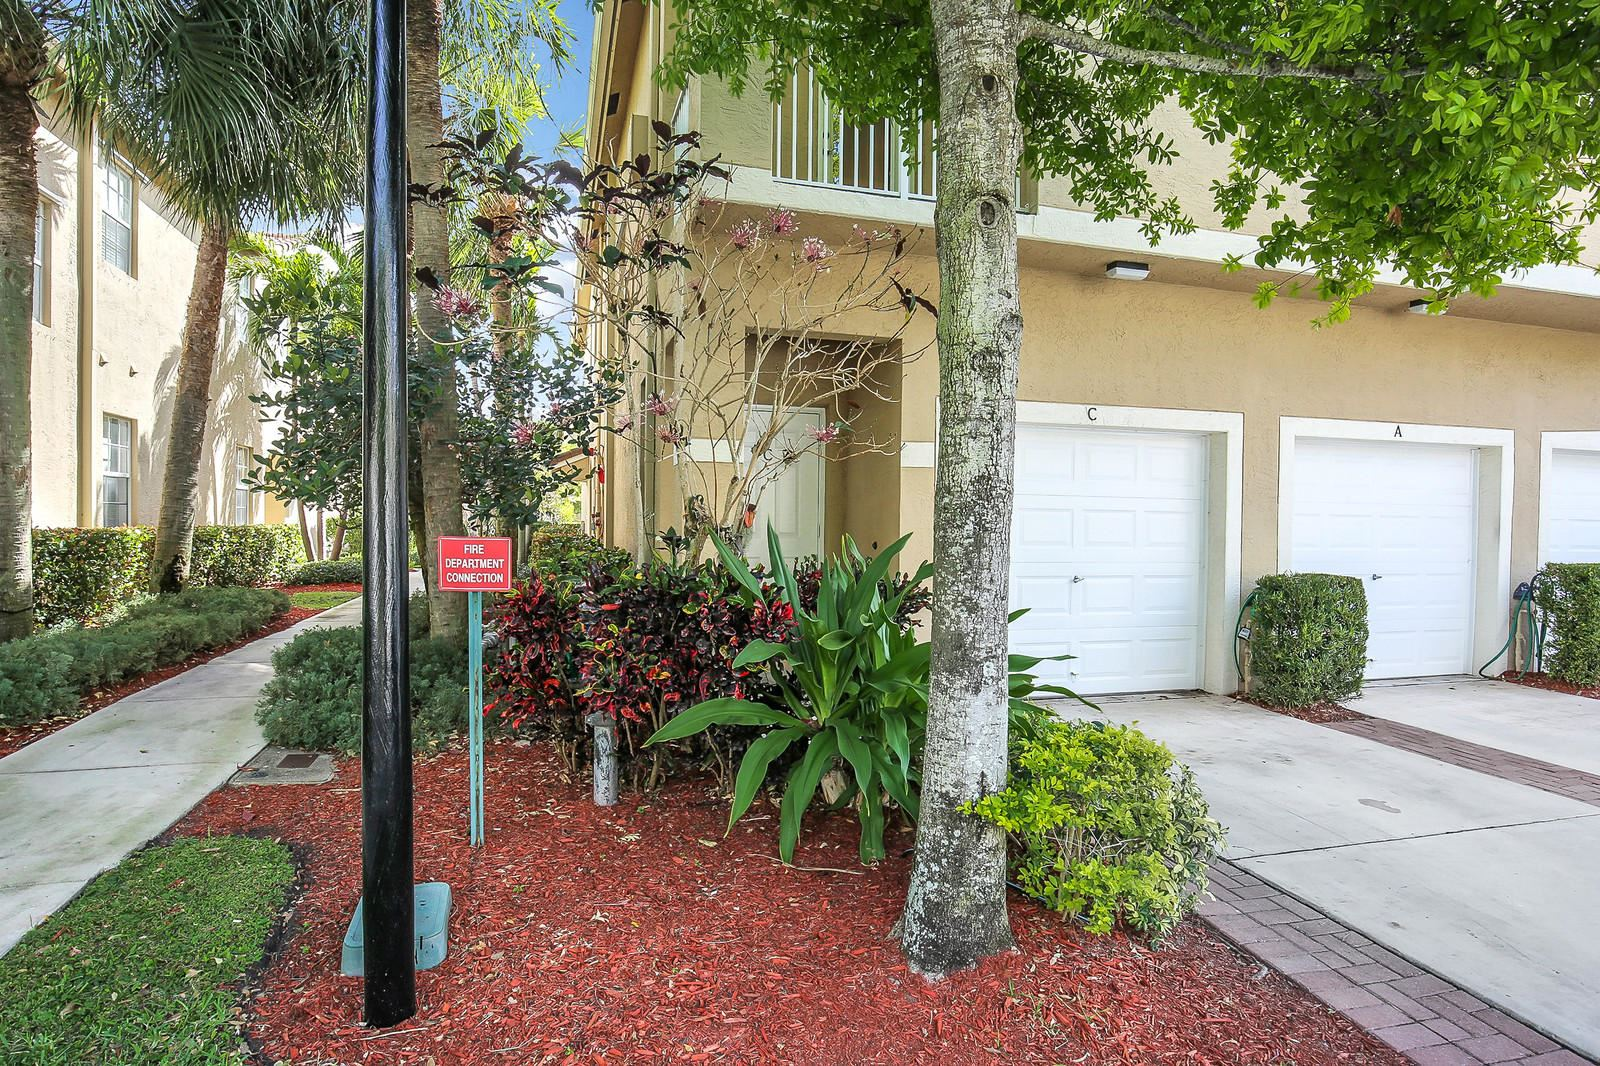 Photo of 114 Lighthouse Circle #C, Tequesta, FL 33469 (MLS # RX-10628354)